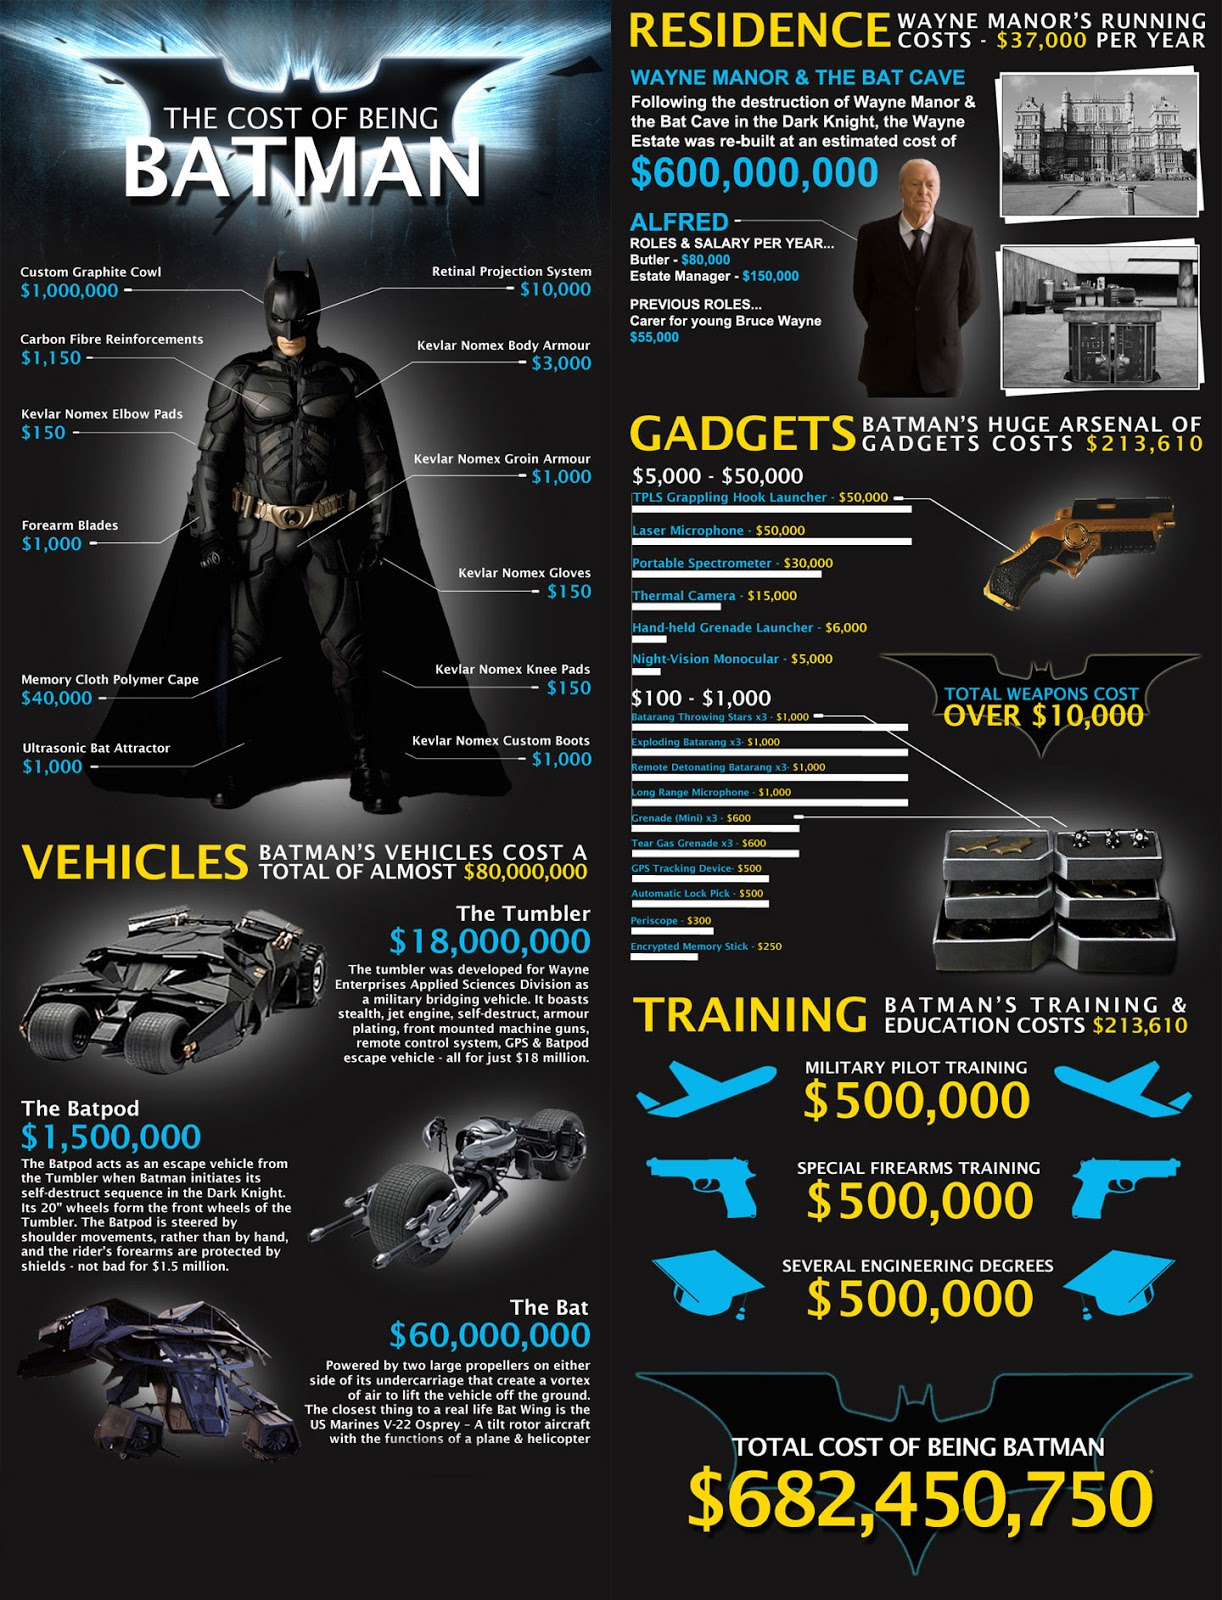 40943-cost-of-being-batman-infographic2.